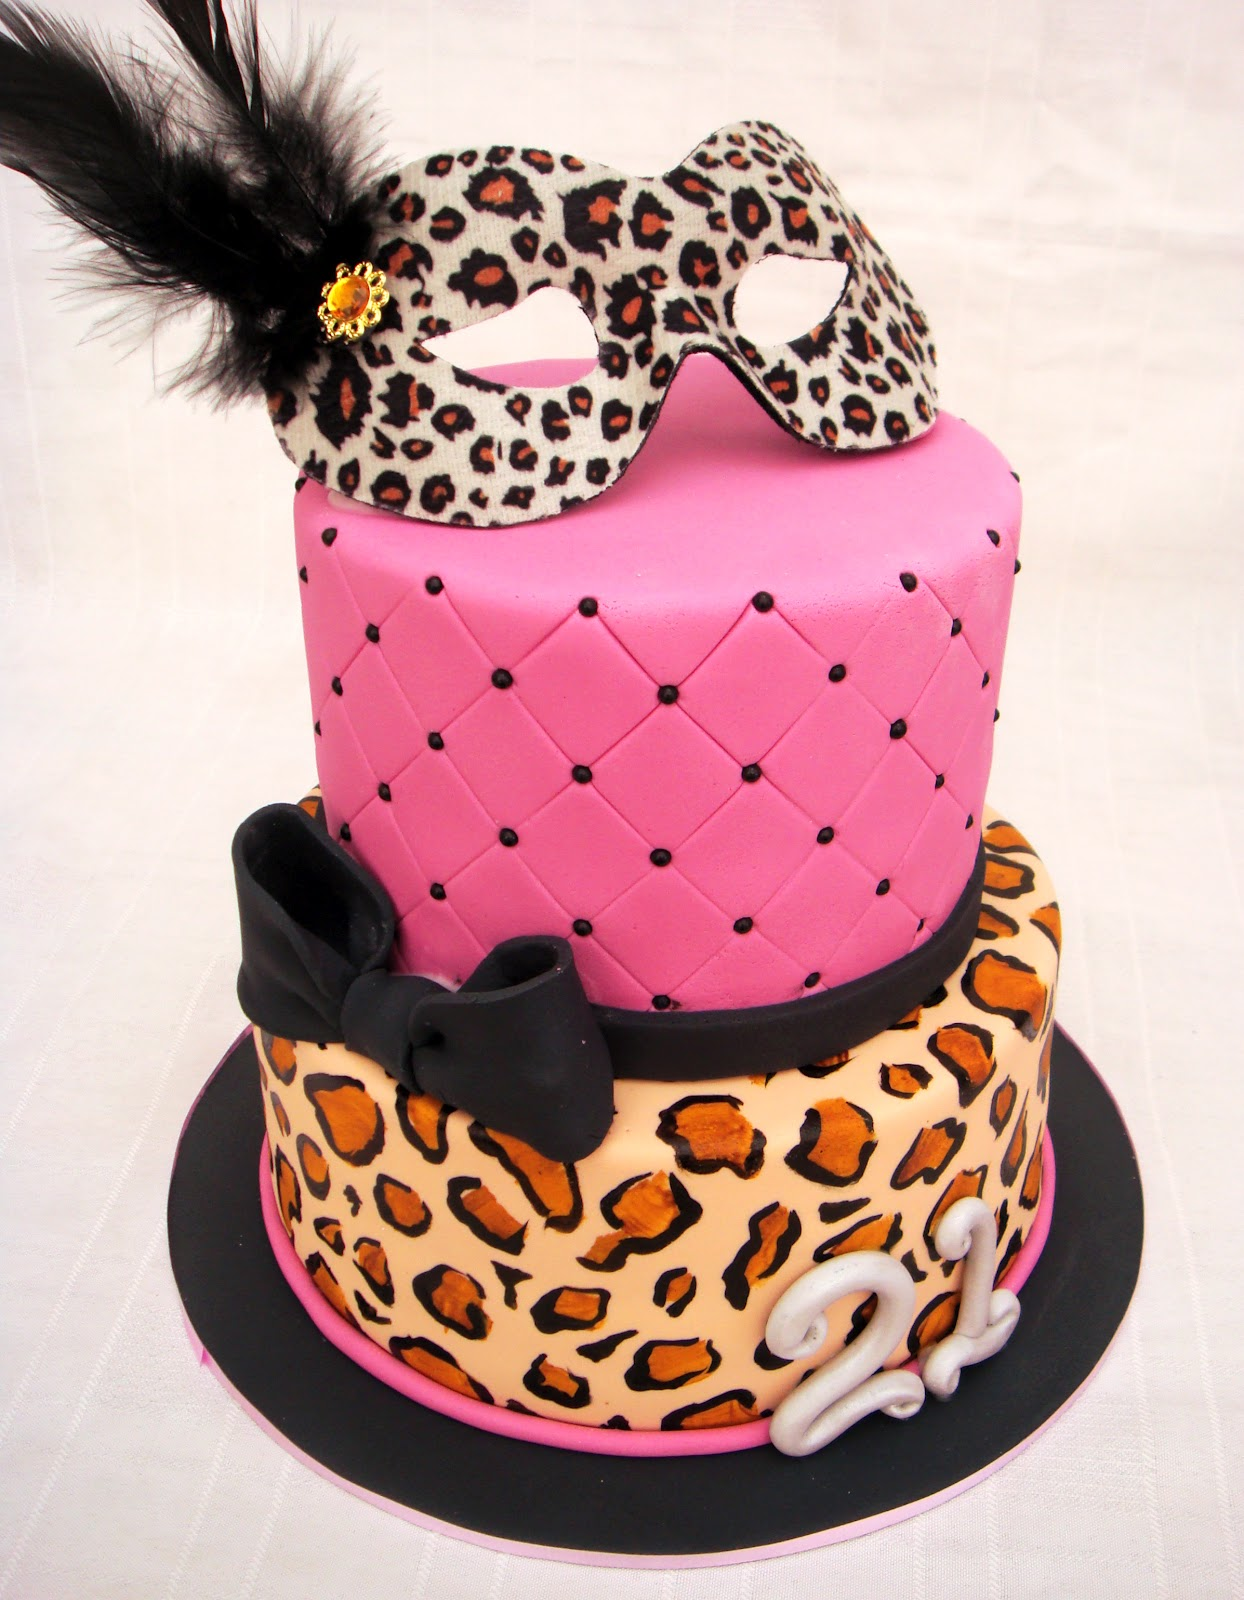 Animal Print Cake Pictures : Leopard Print Cakes   Decoration Ideas Little Birthday Cakes